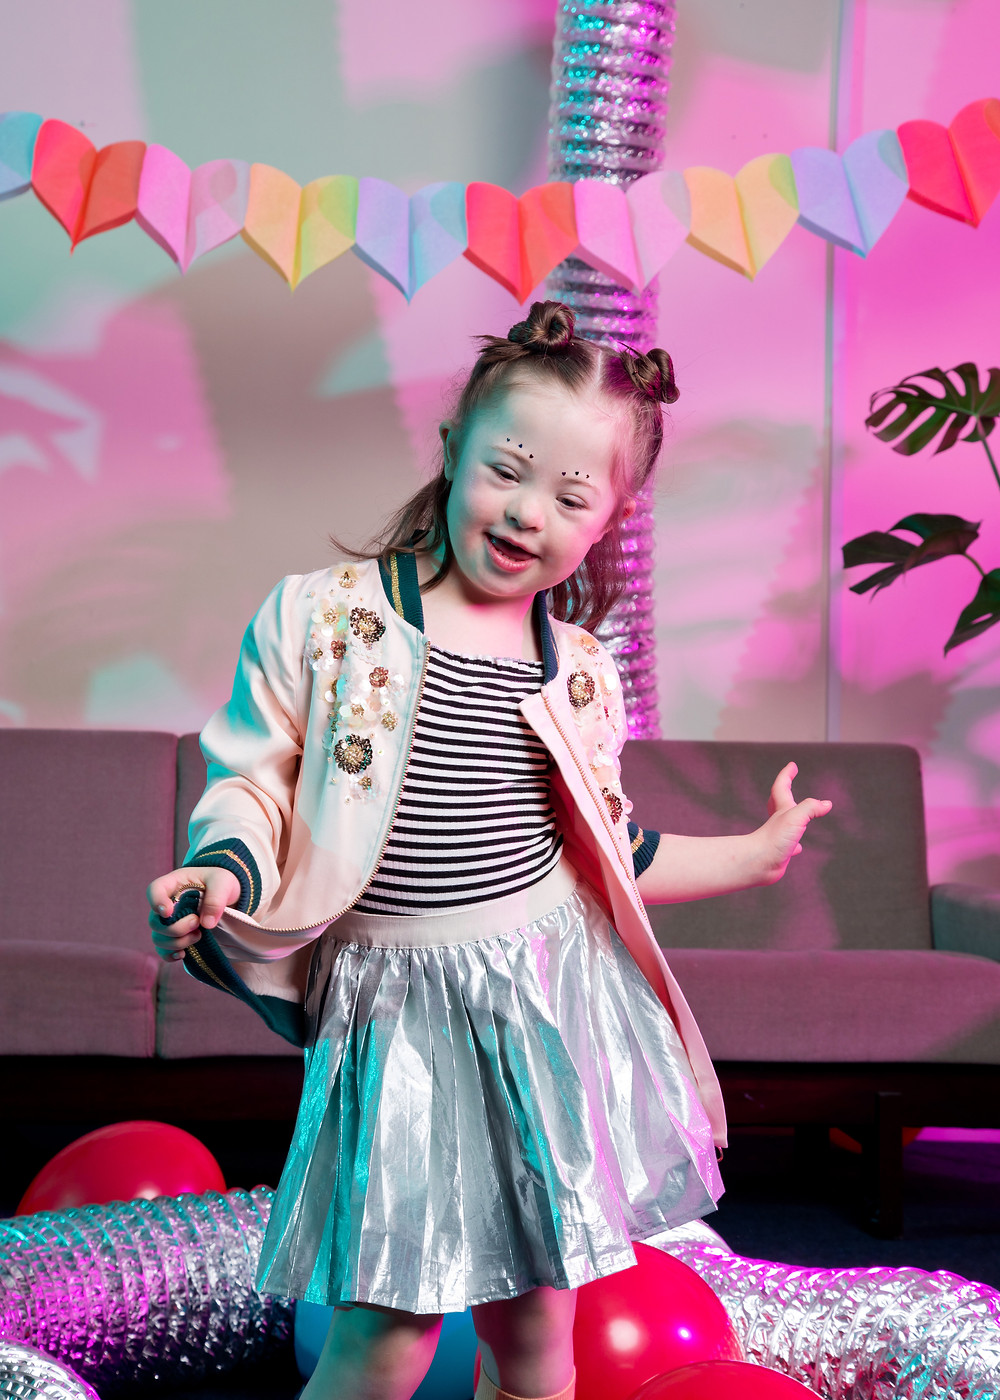 Child model with Down syndrome, influencer instagram